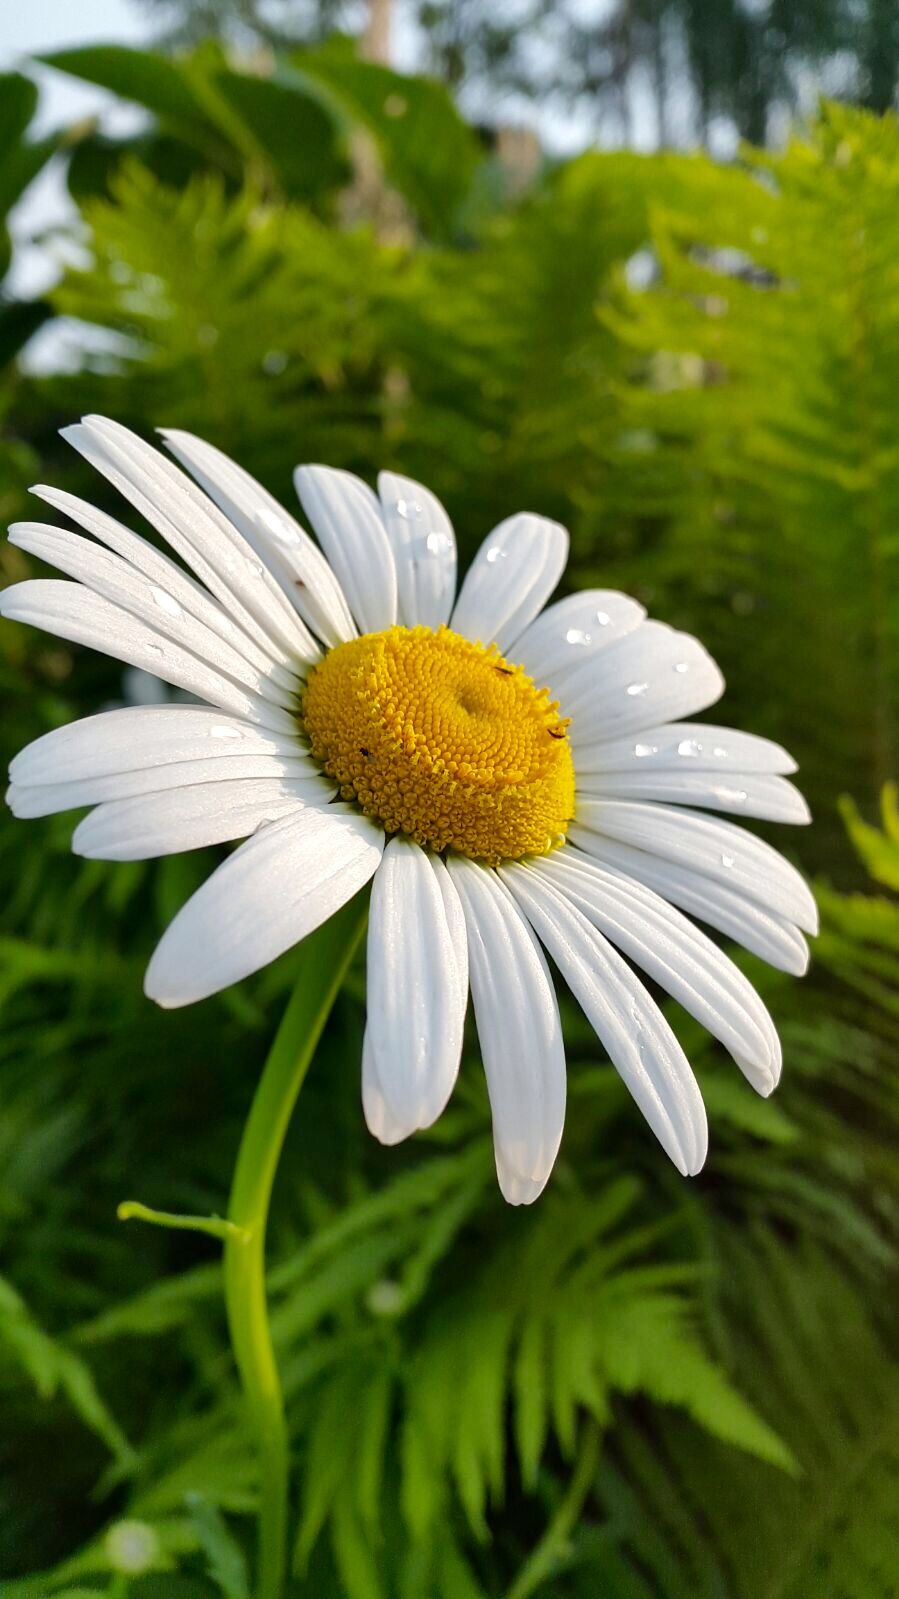 Pin By Stasa Tomovic On Nature Pinterest Flowers Flower And Gardens